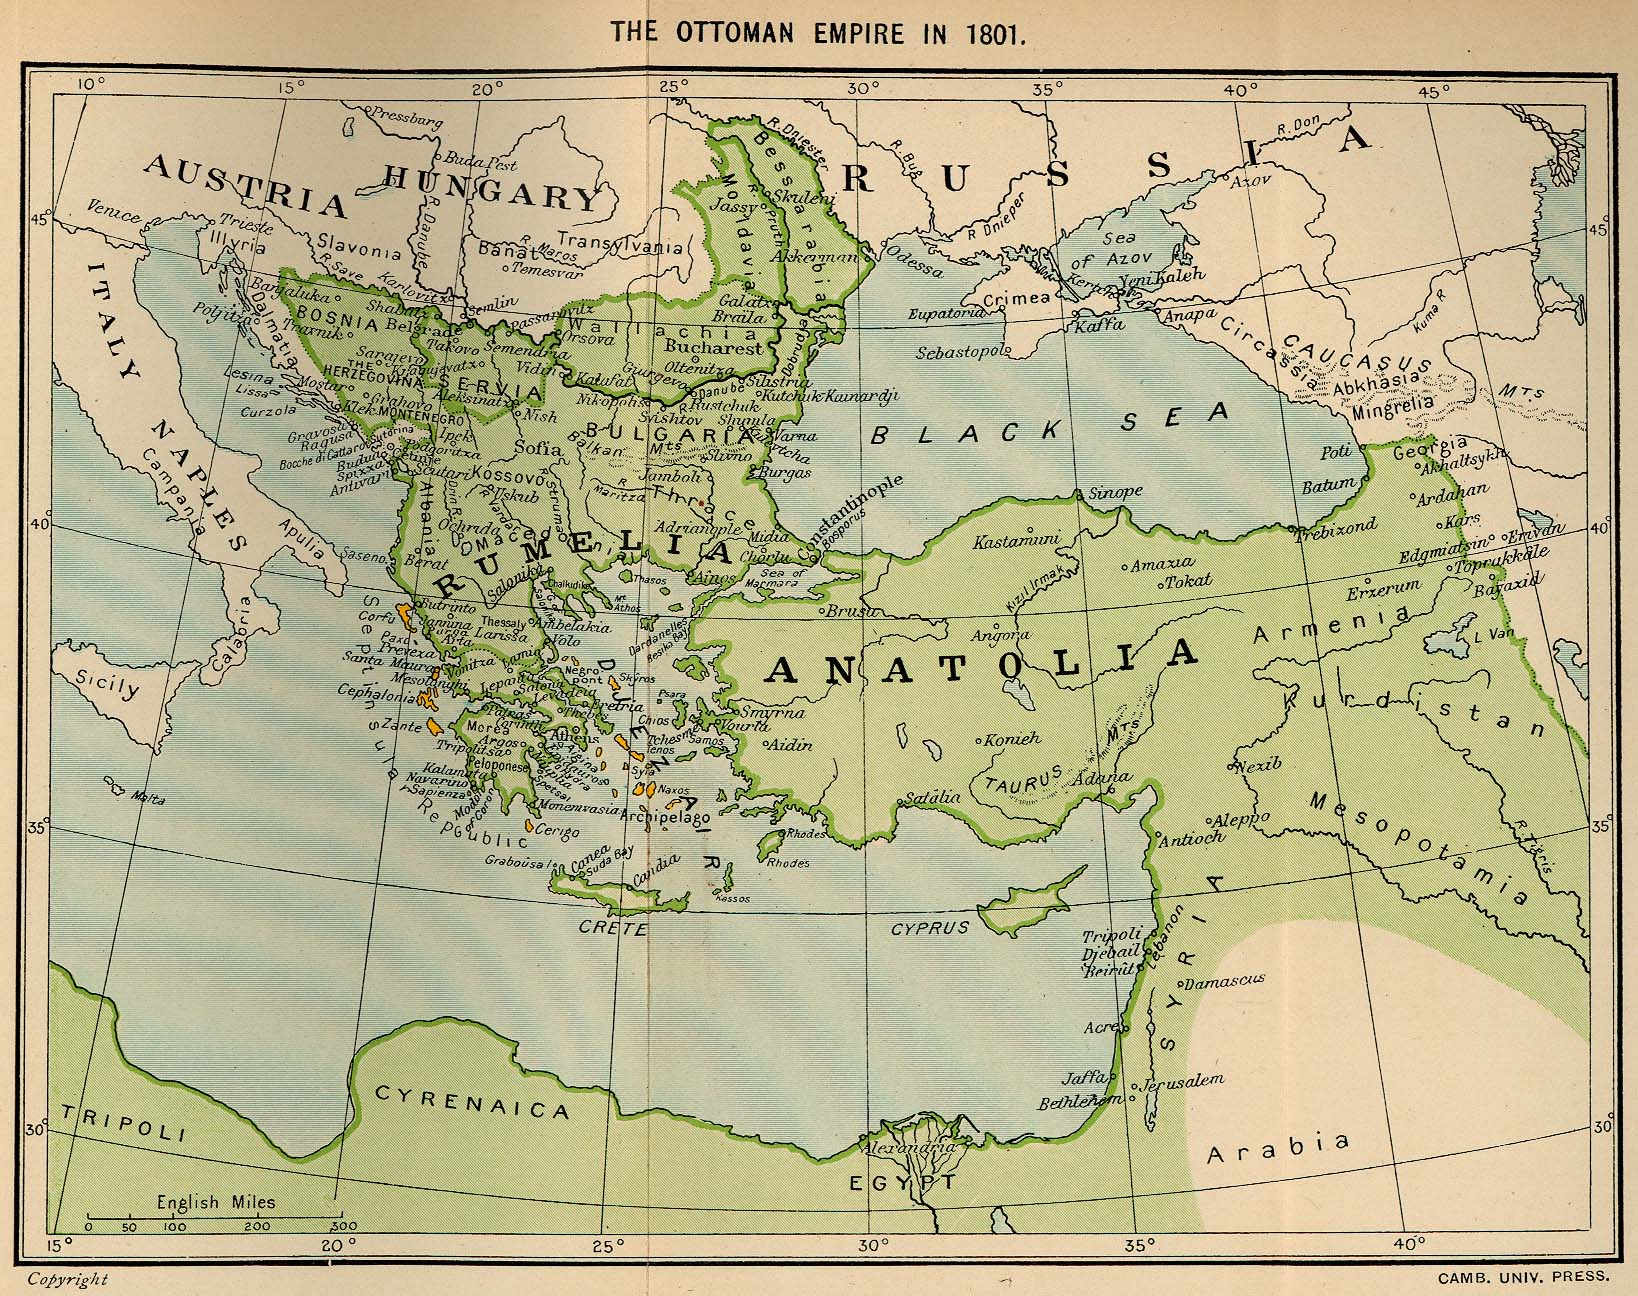 The Ottoman Empire in 1801